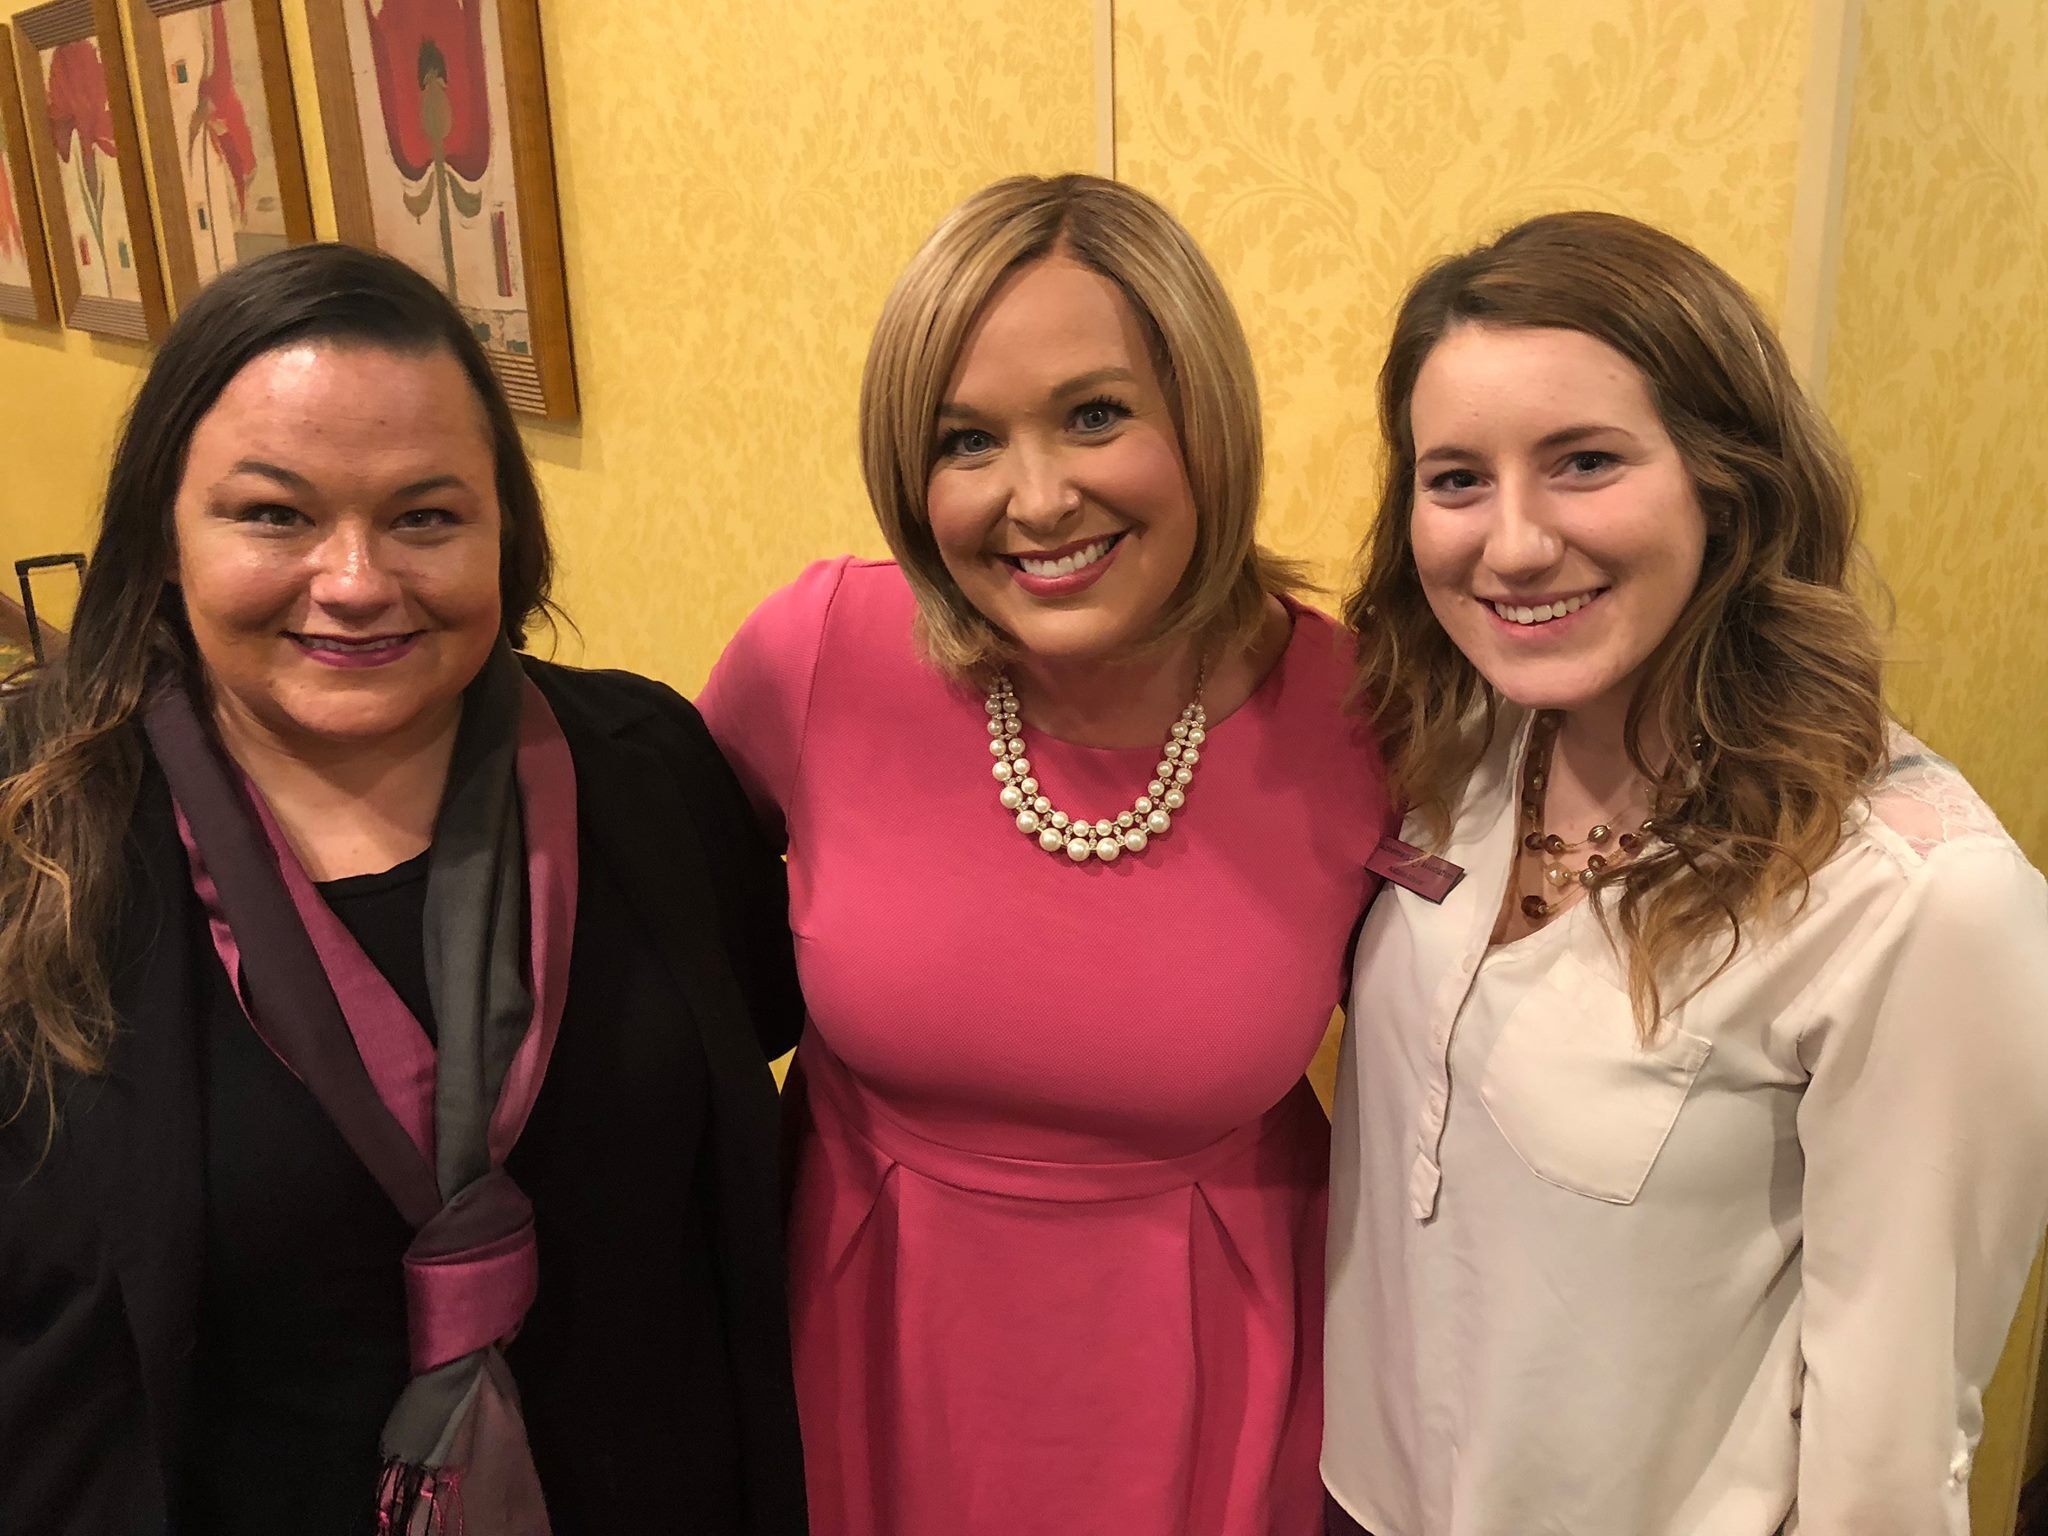 KWWL's Abby Turpin with Paige Knebel and Natalie Meyer of the Alzheimer's Association East Central Iowa Chapter